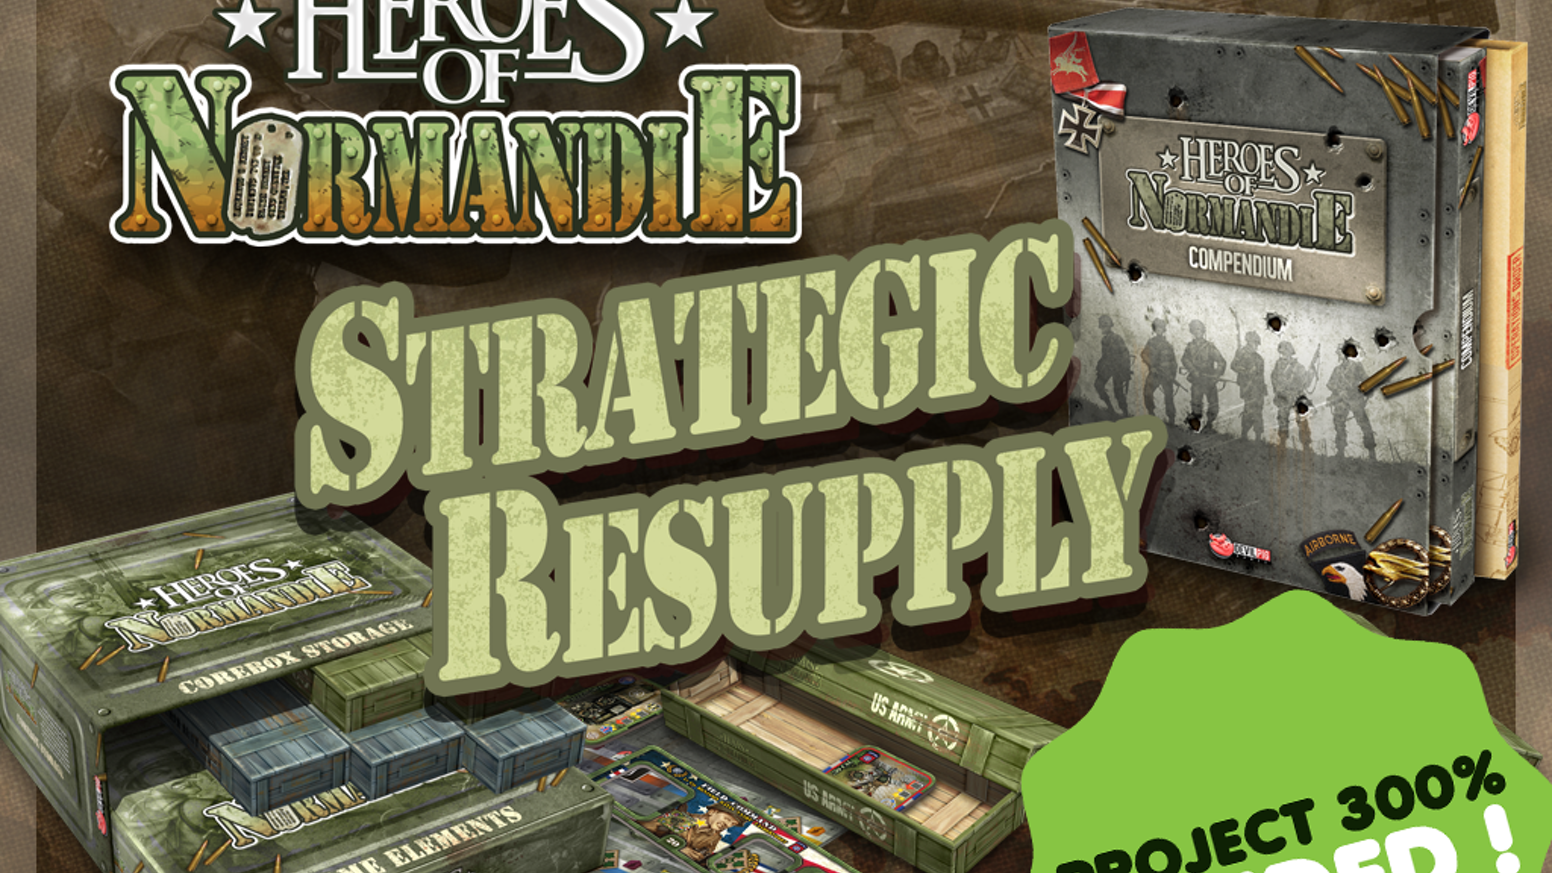 After two years of war, we proudly present you the HoN Resupply KS campaign. Complete Compendium, storage solution, surprise and more!